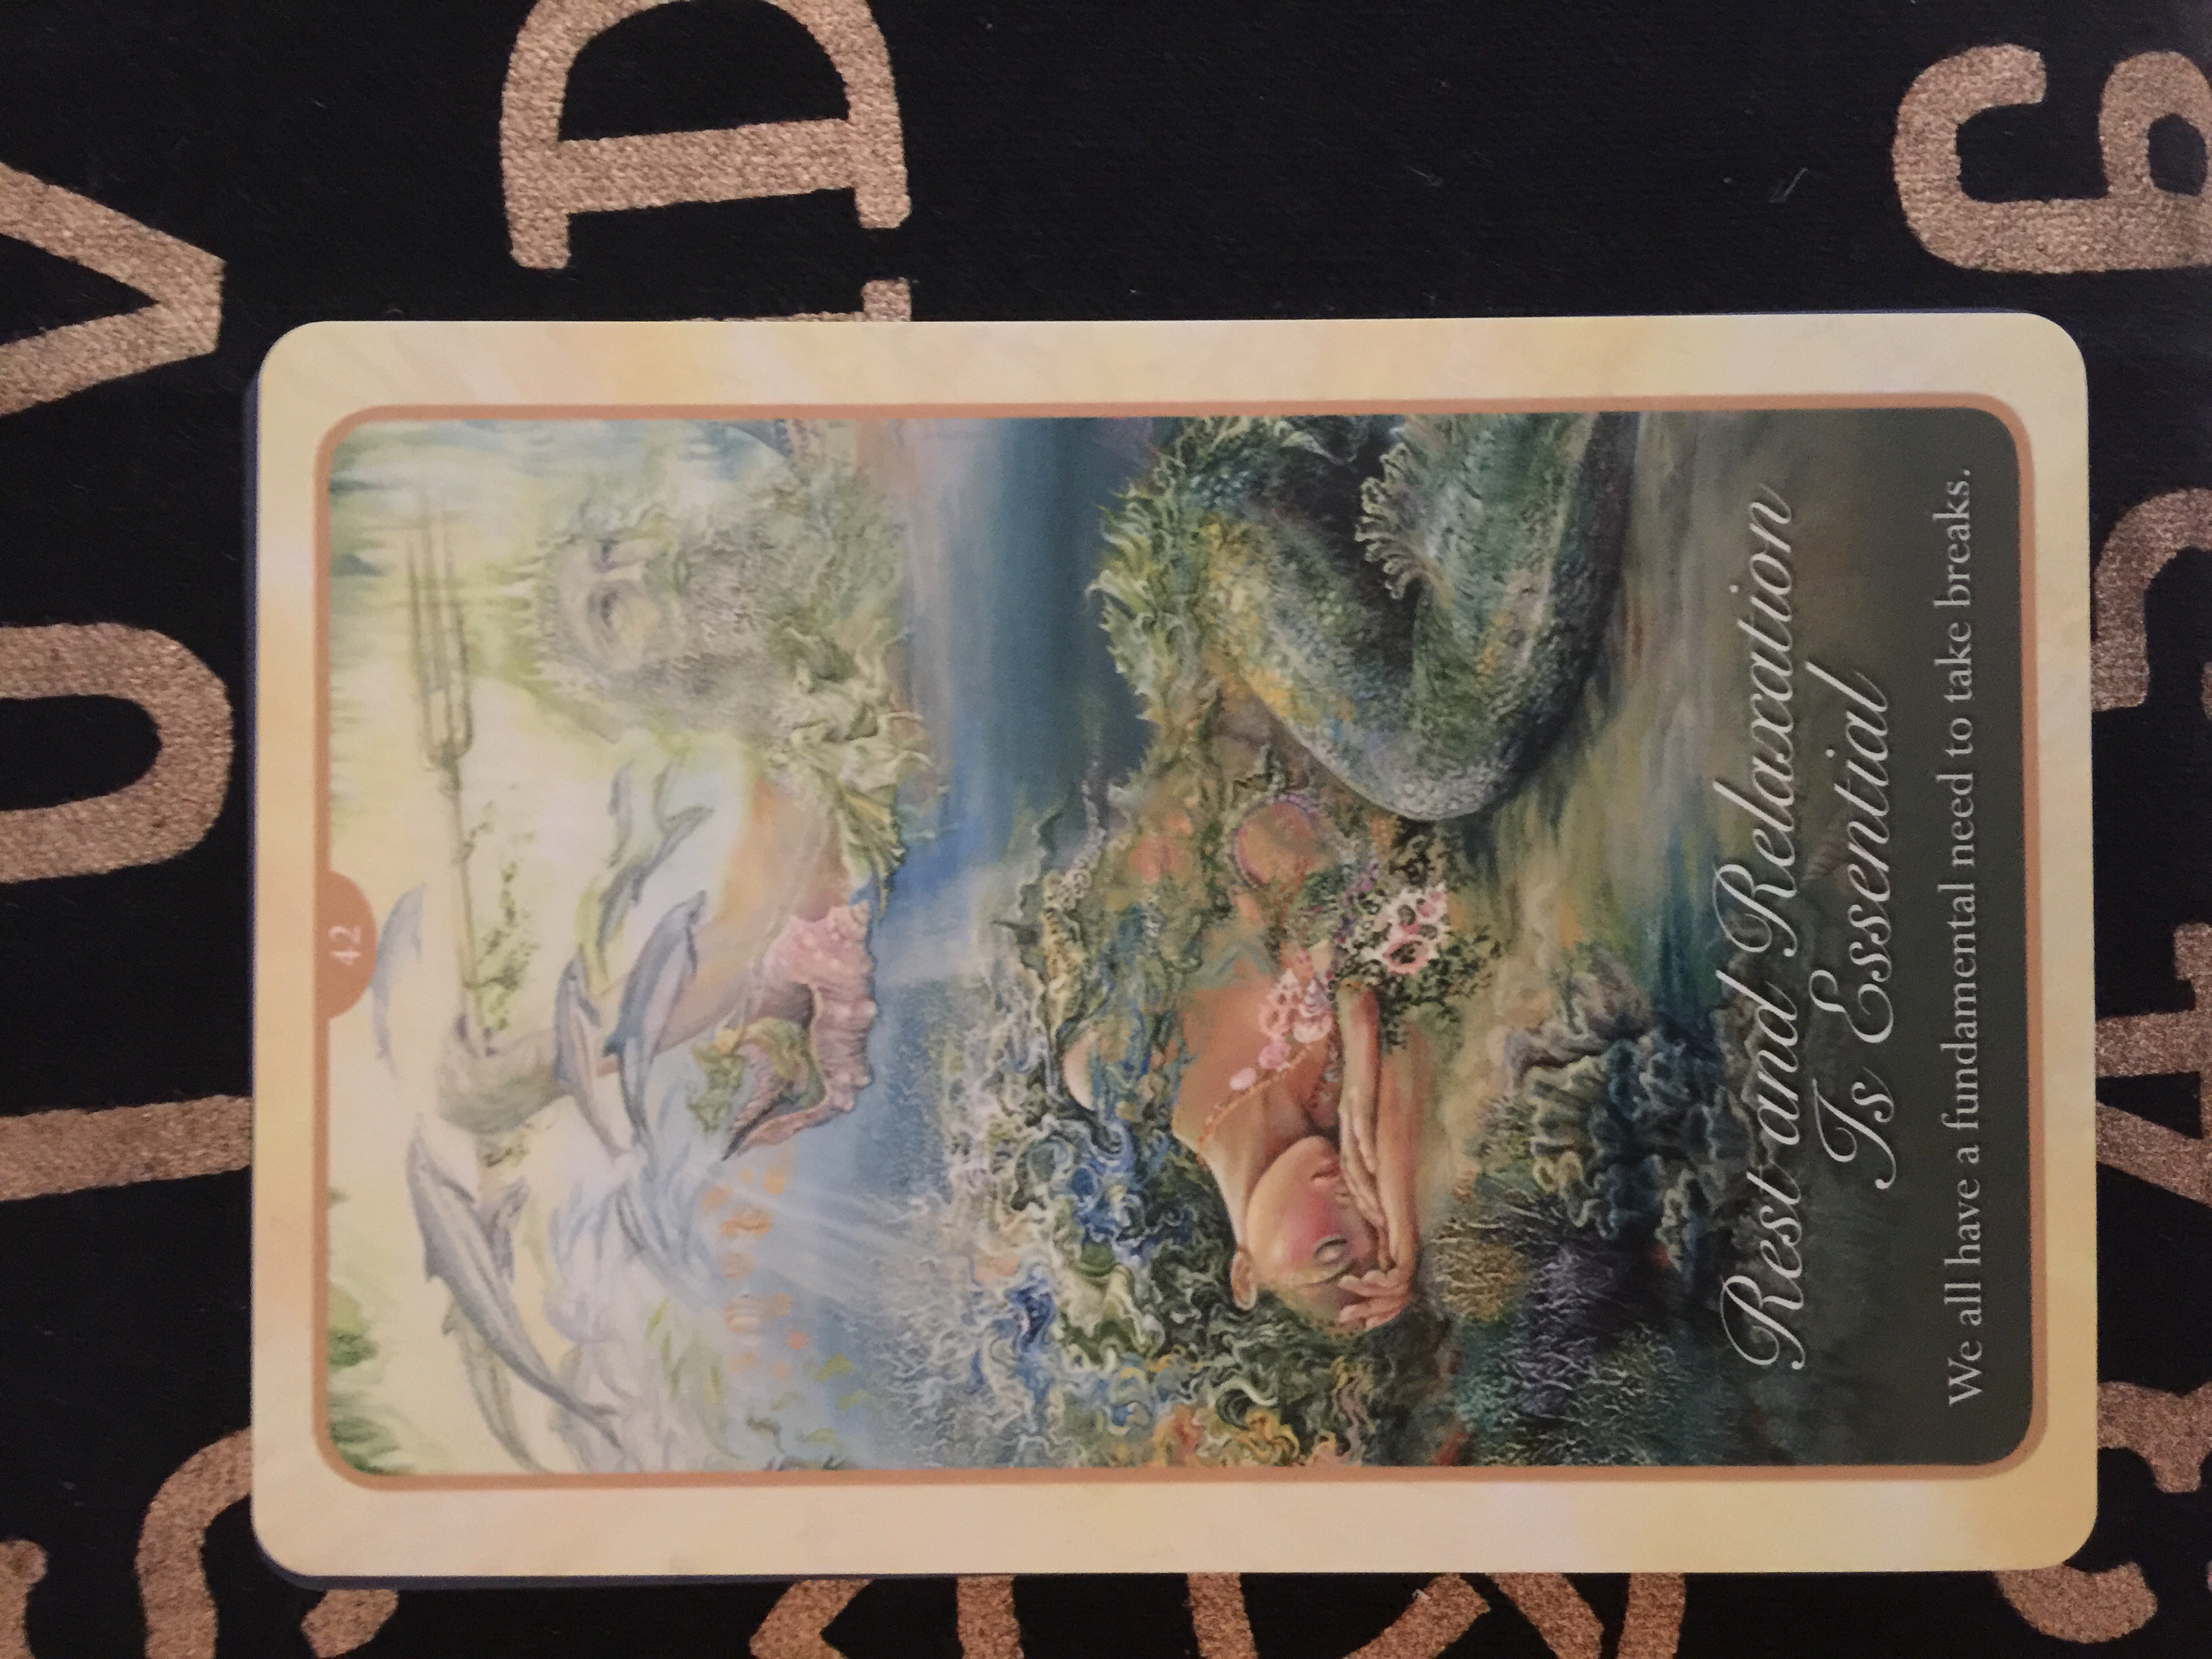 Deck used: Whispers of Love Oracle Cards